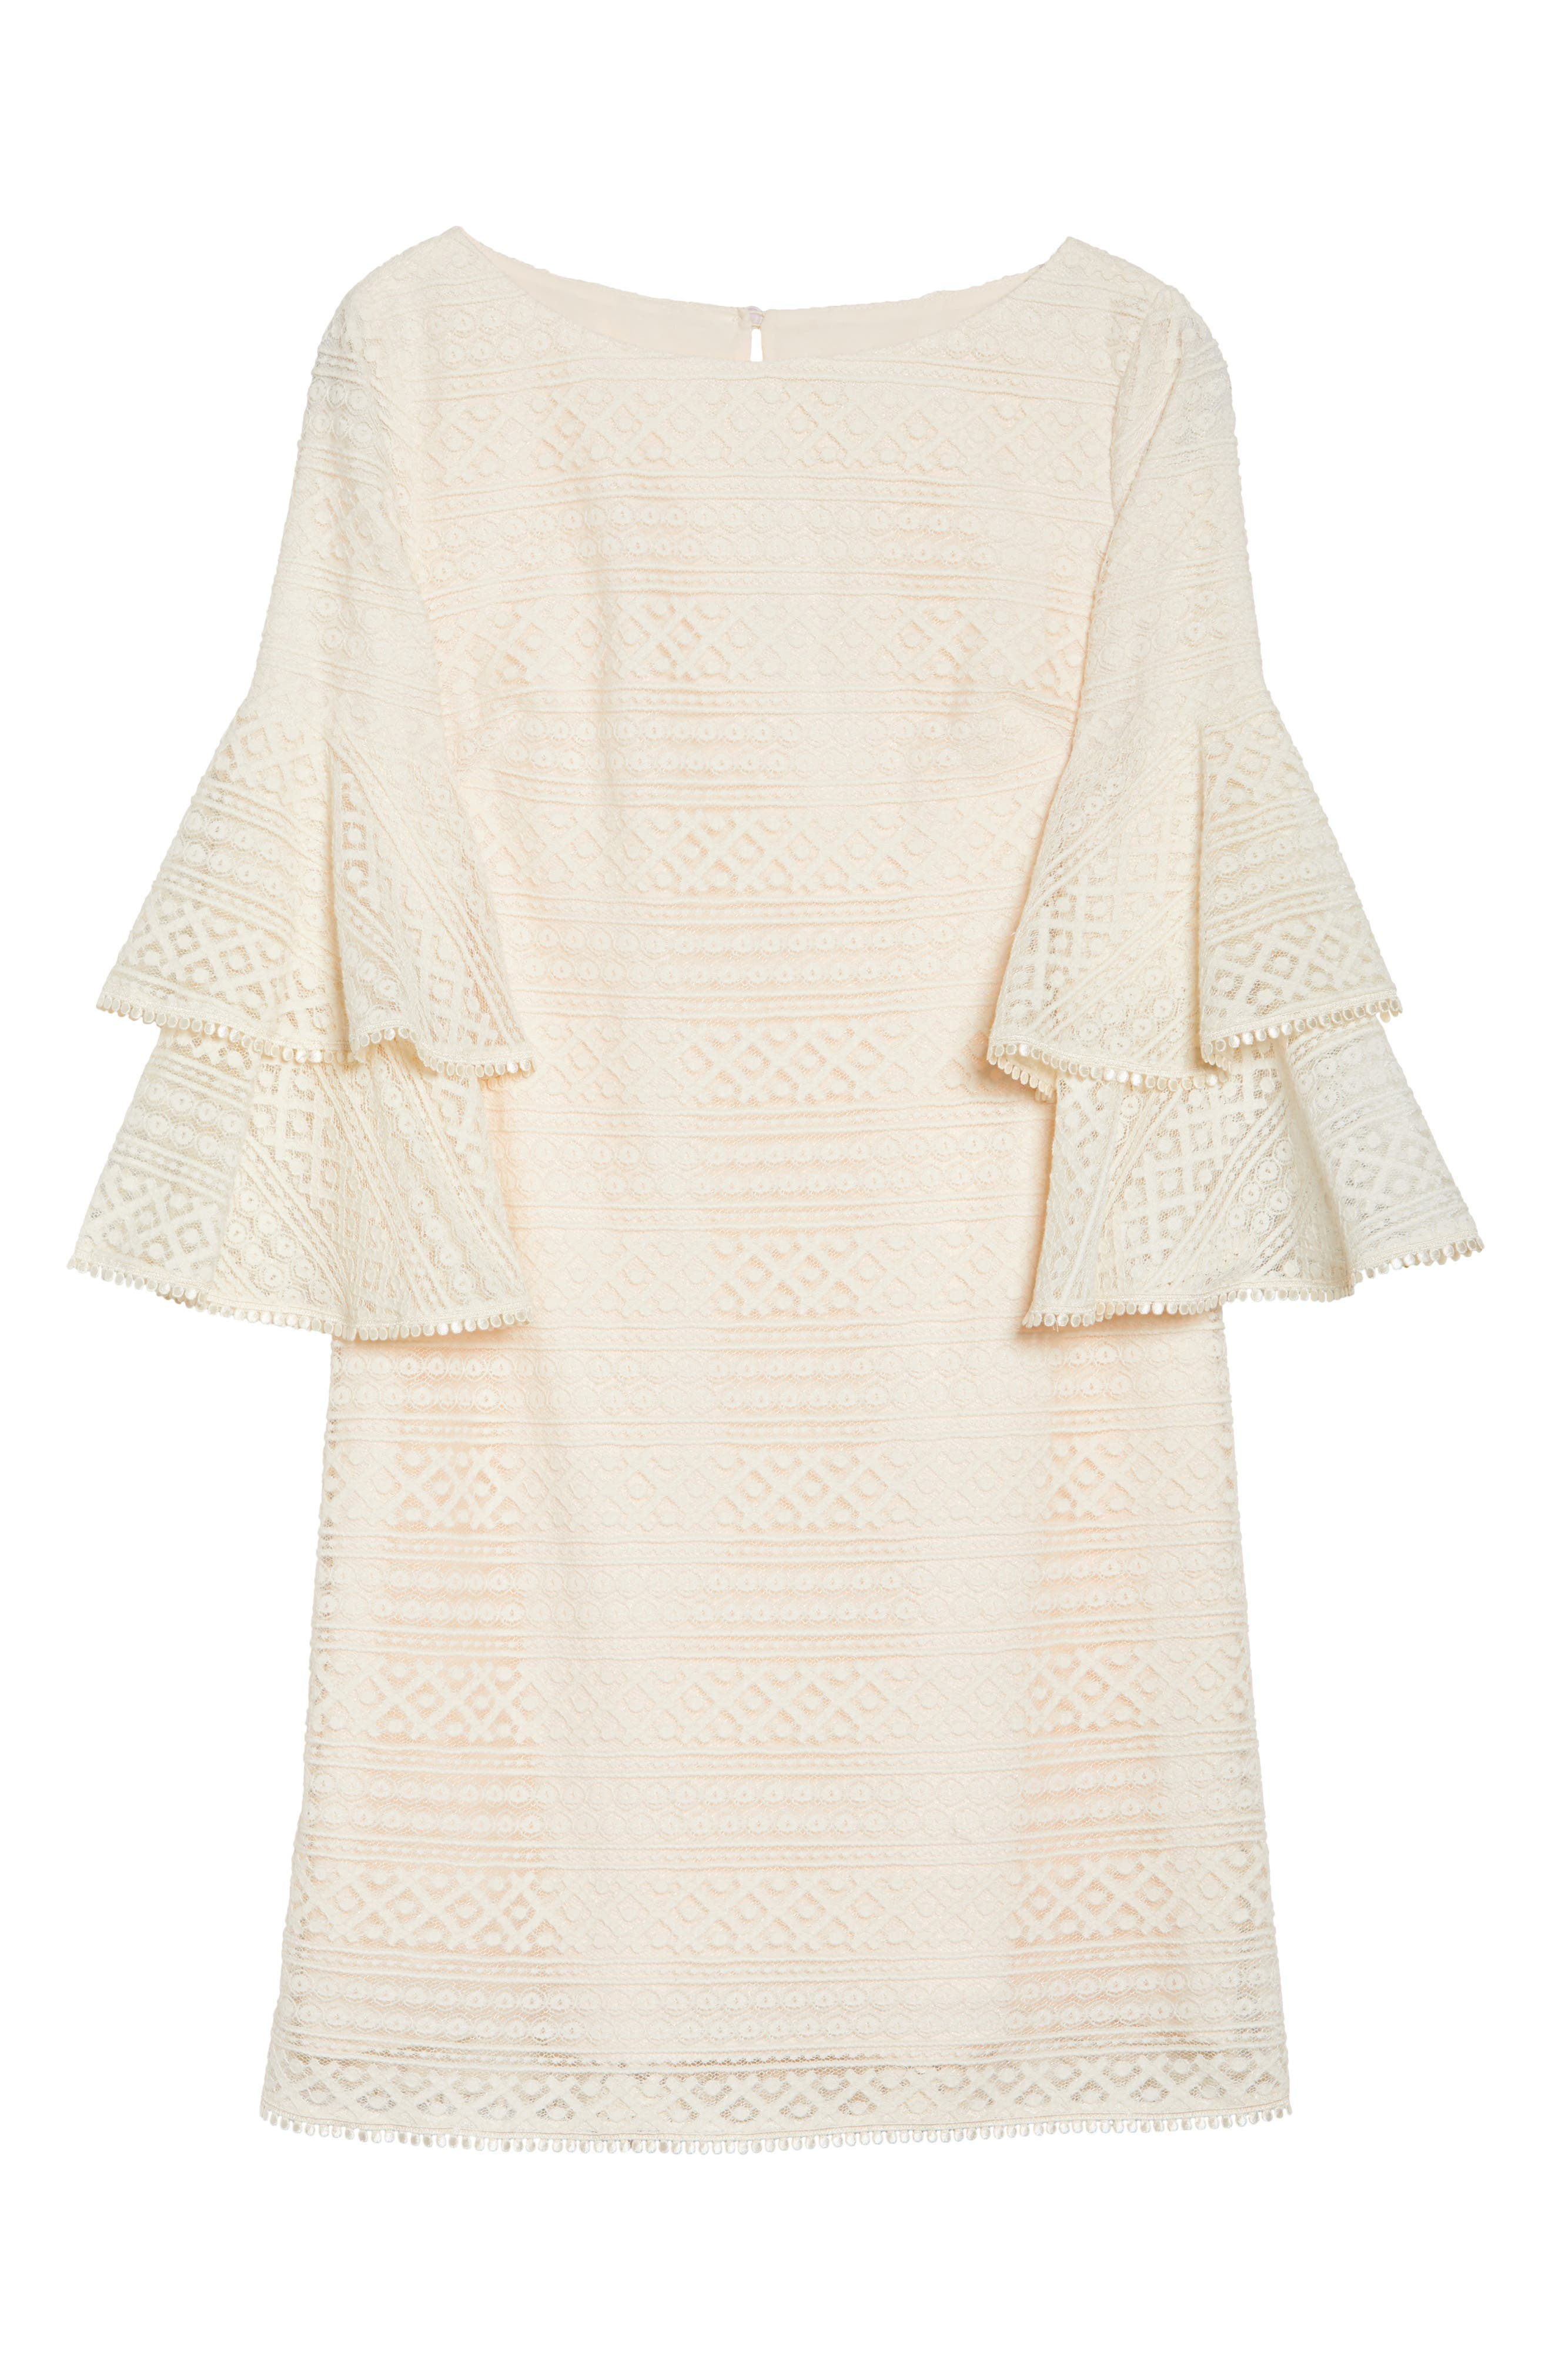 Bell Sleeve Lace Shift Dress,                             Alternate thumbnail 6, color,                             900